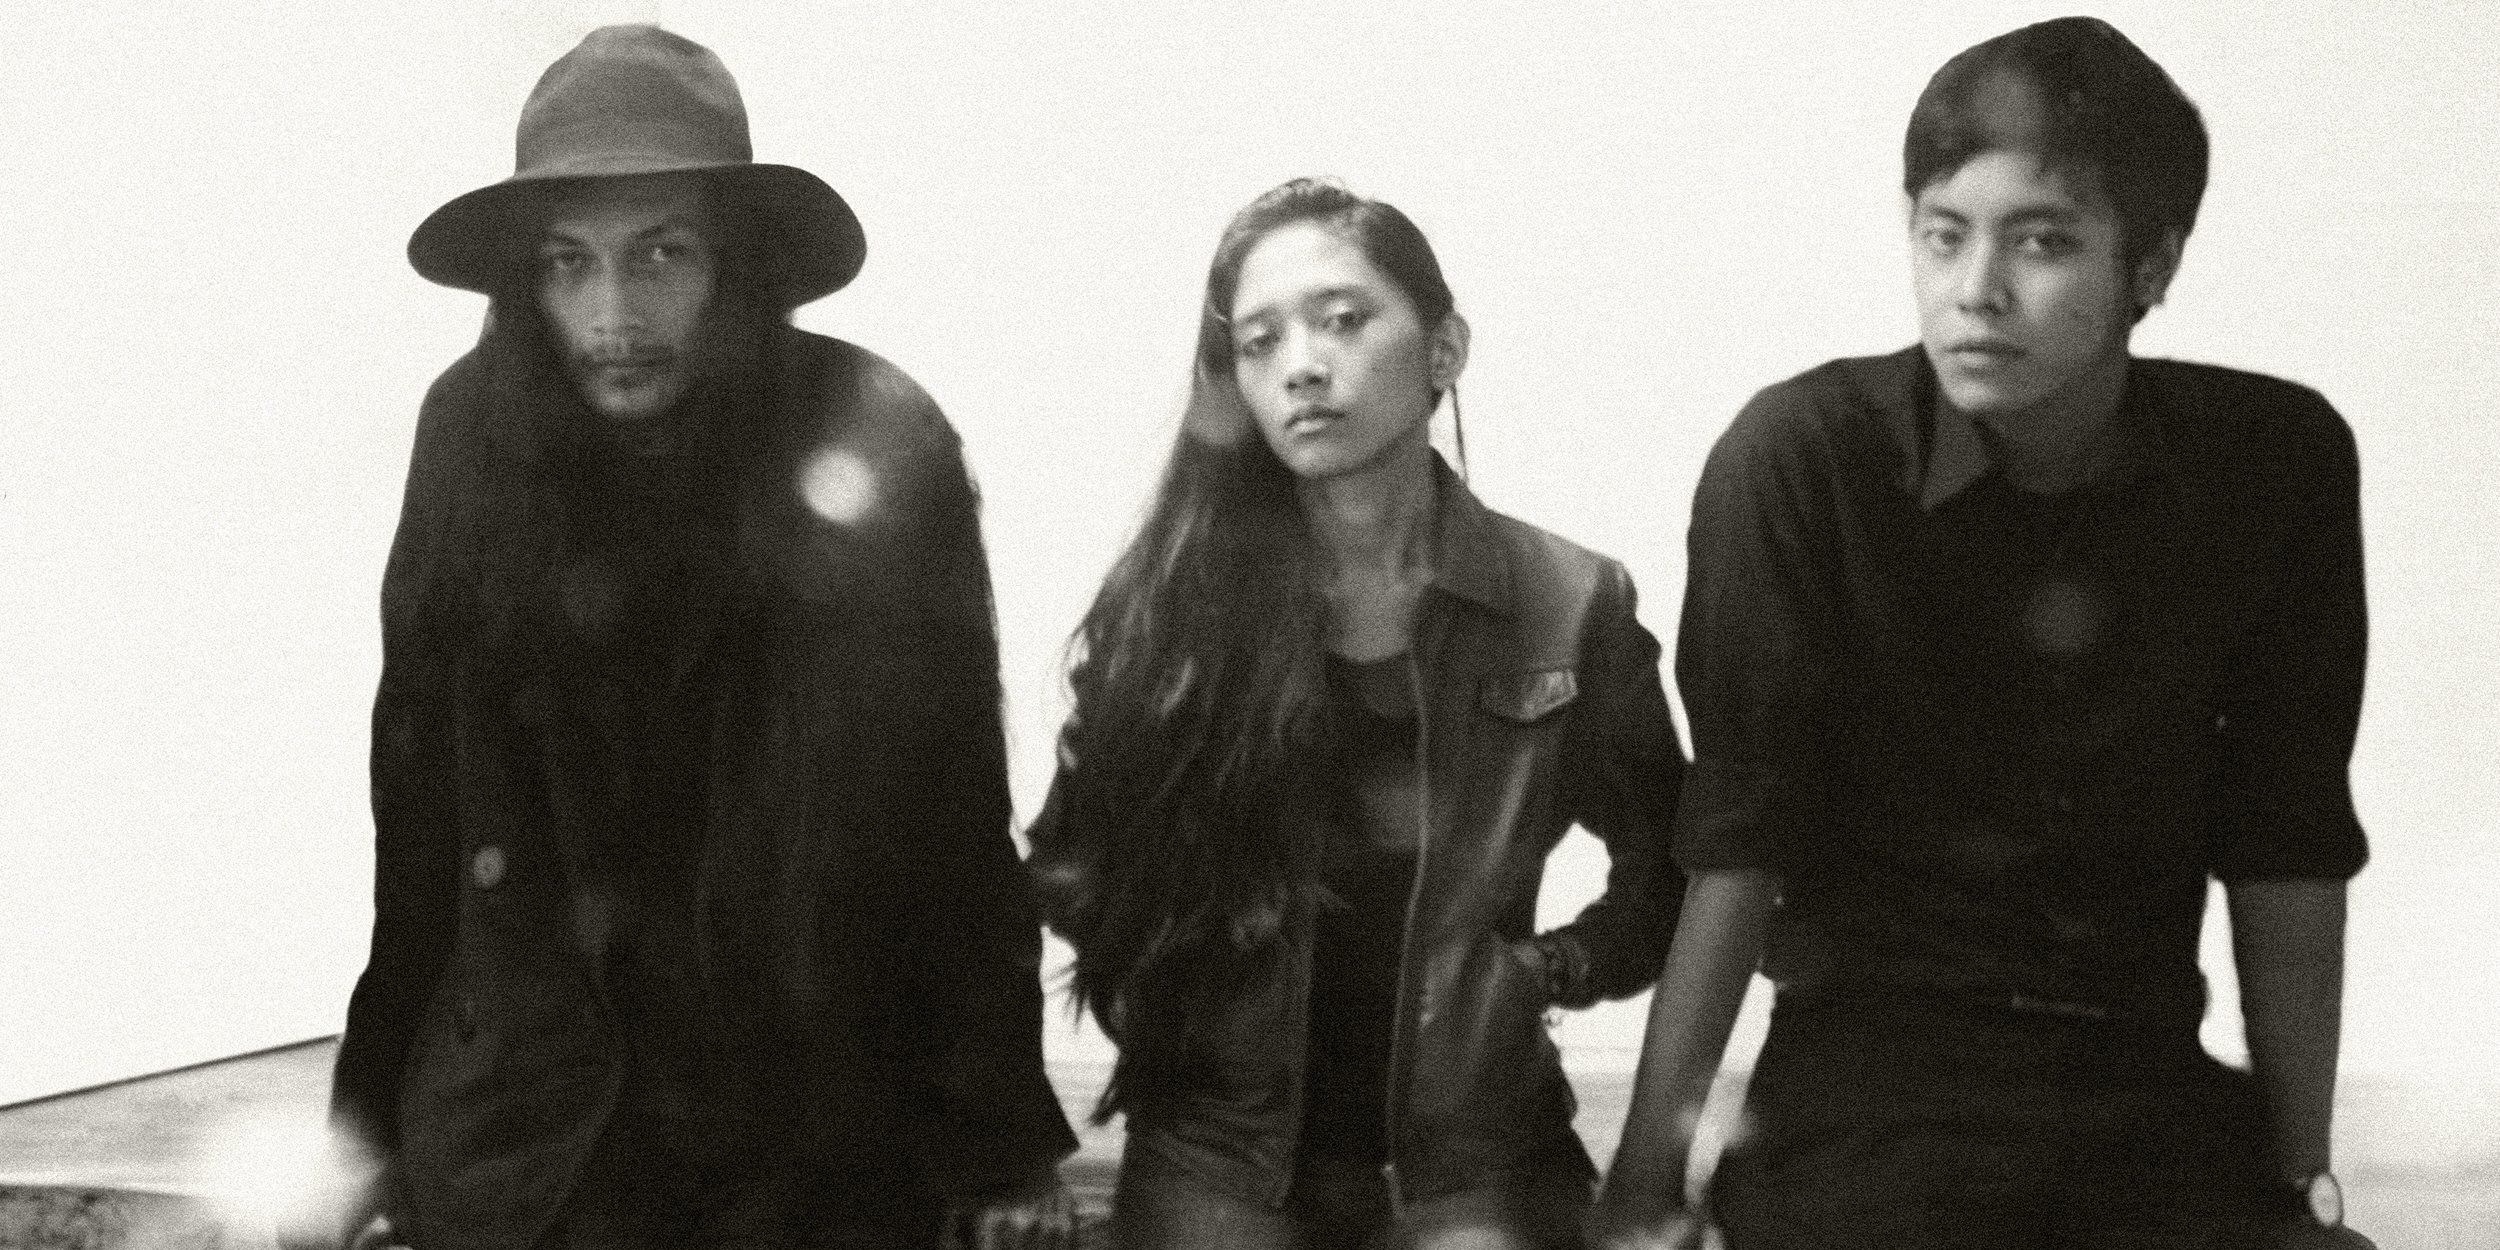 Indonesian flamboyant rock band Superfine release 14 minute song 'Sound of Wild'